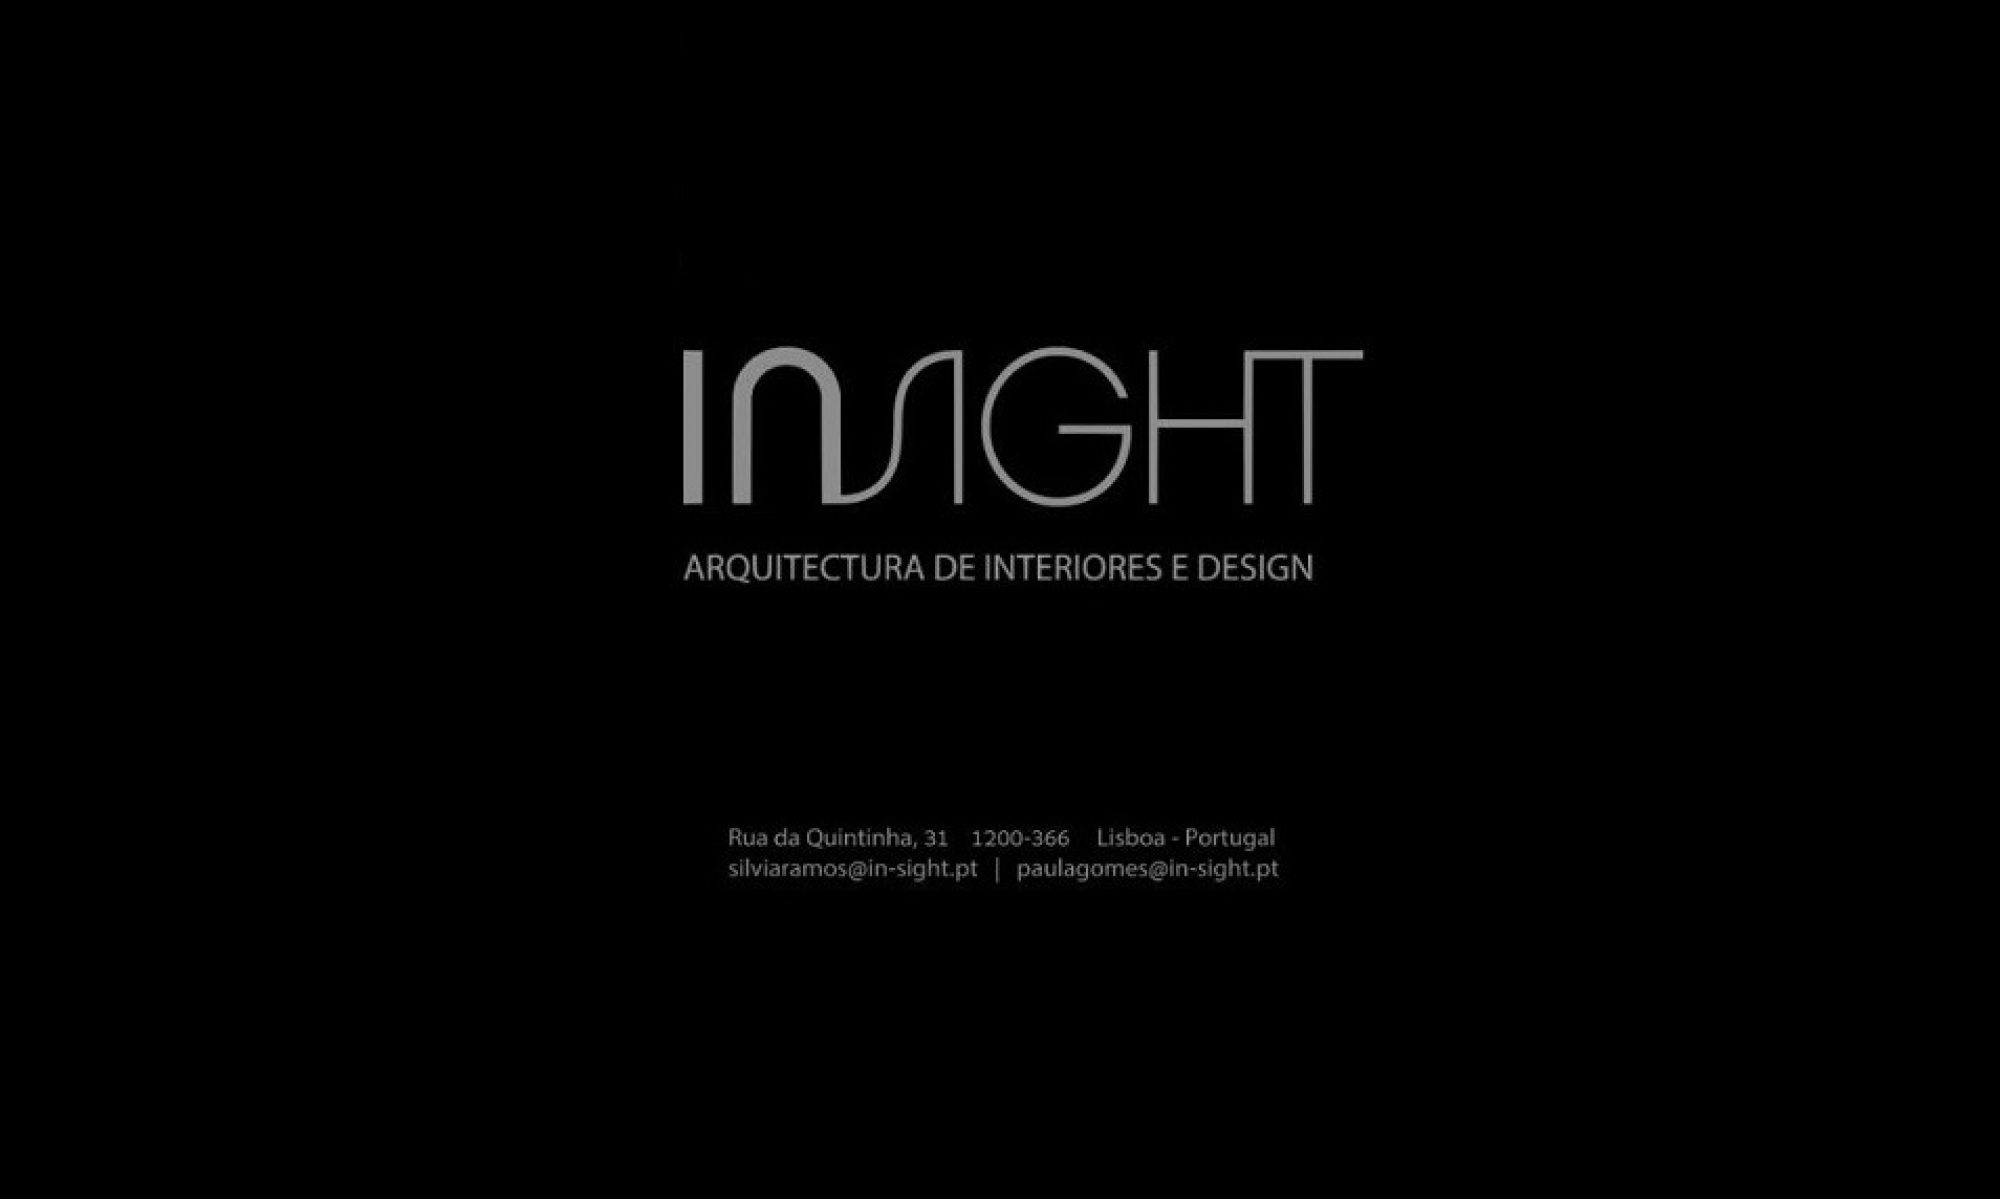 INSIGHT - Interior Architecture and Design